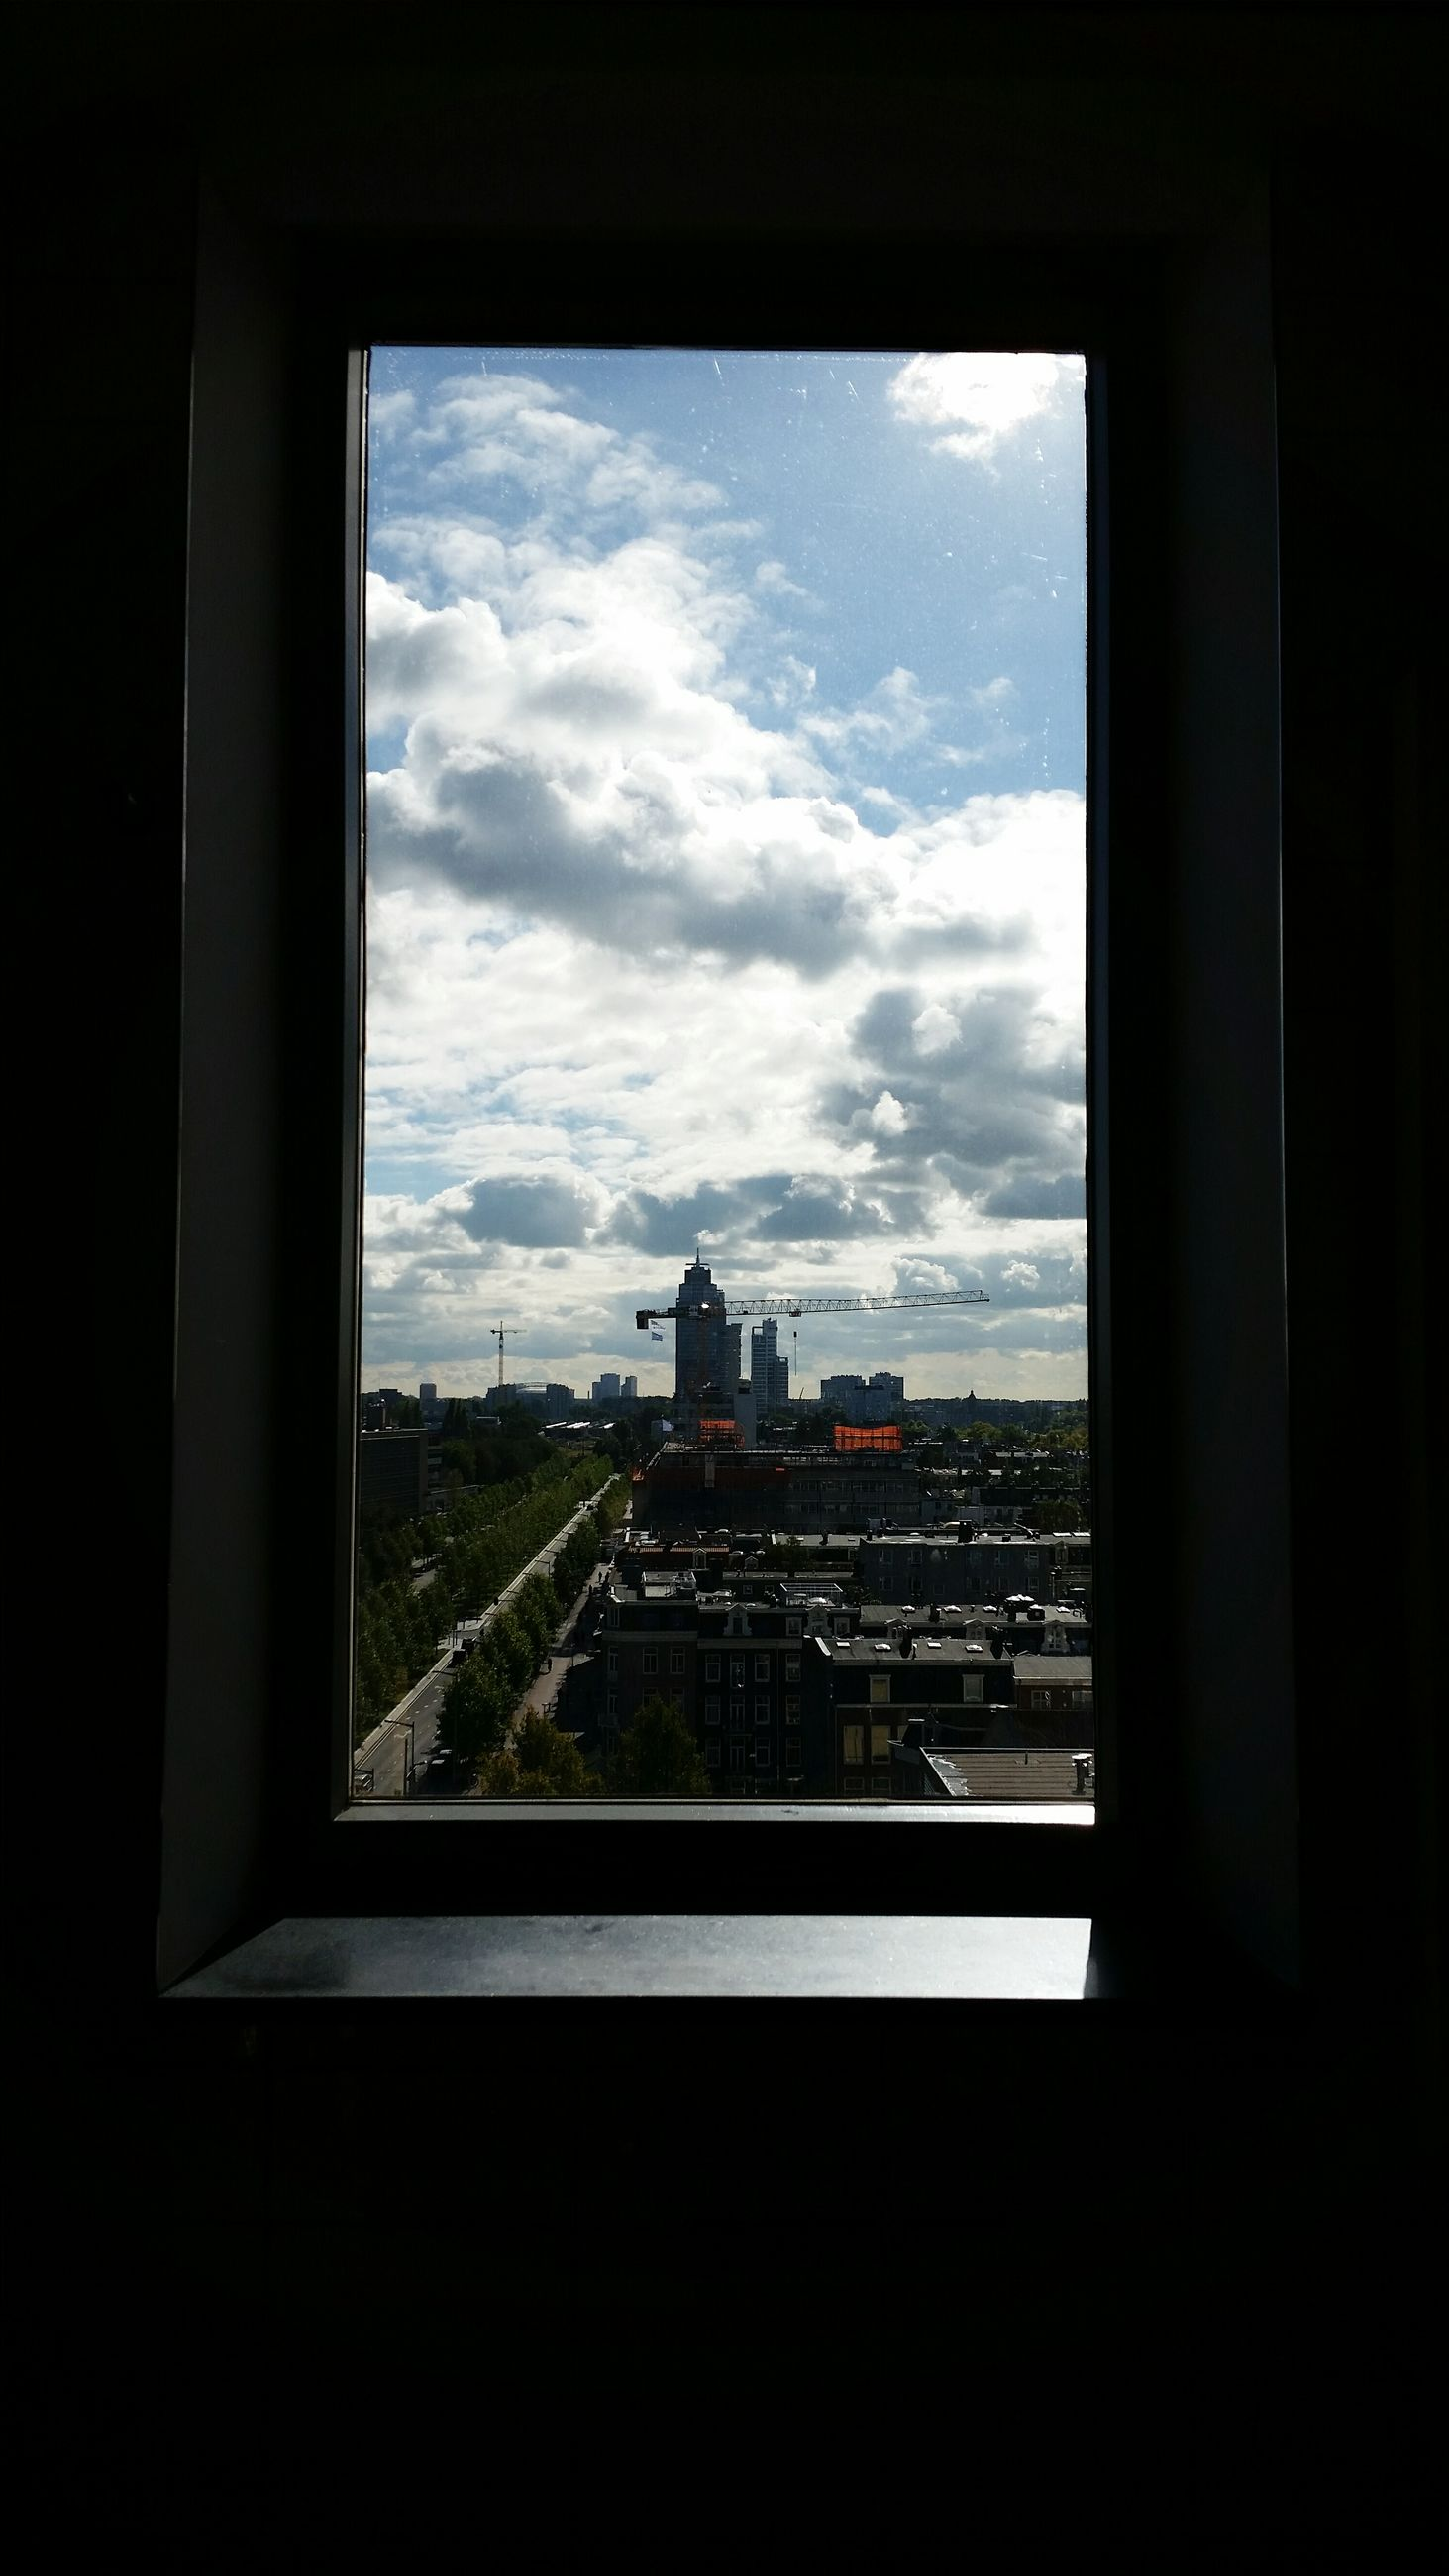 window, indoors, sky, cloud, built structure, architecture, city, transparent, cloud - sky, glass - material, building exterior, cityscape, day, cloudy, cloudscape, development, city life, tall